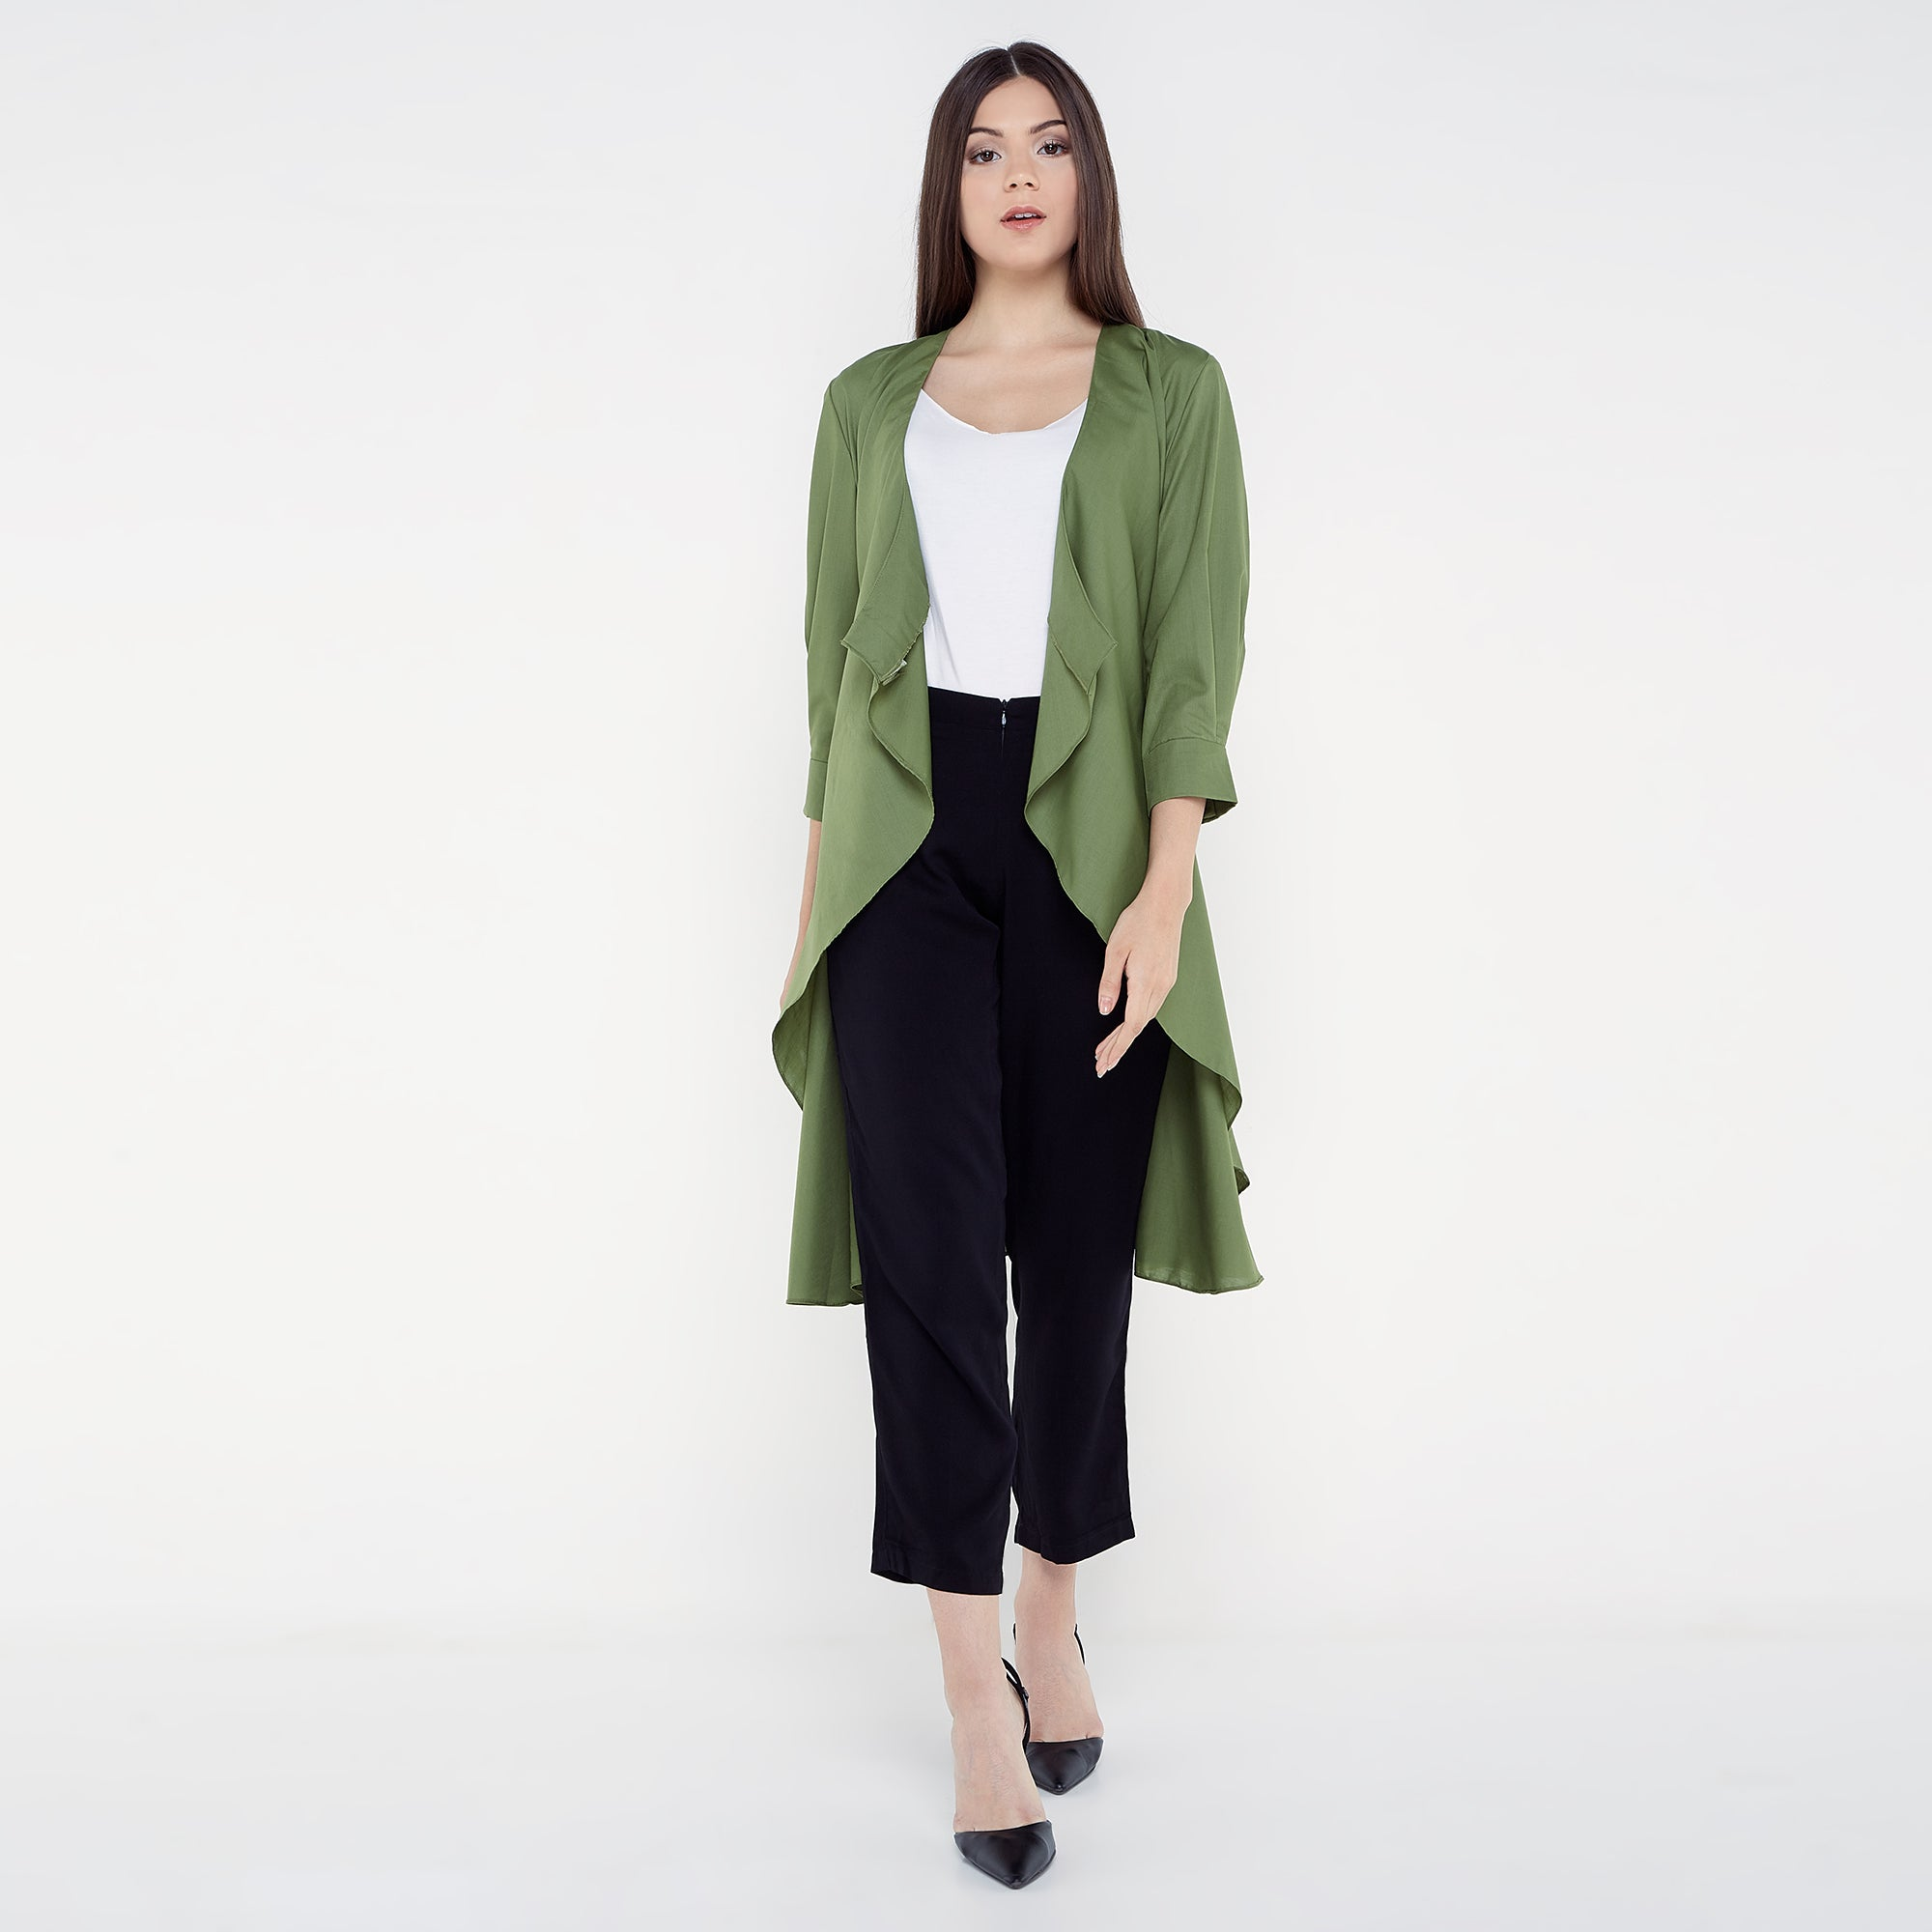 Tie Up Cardigan Blouse - Green